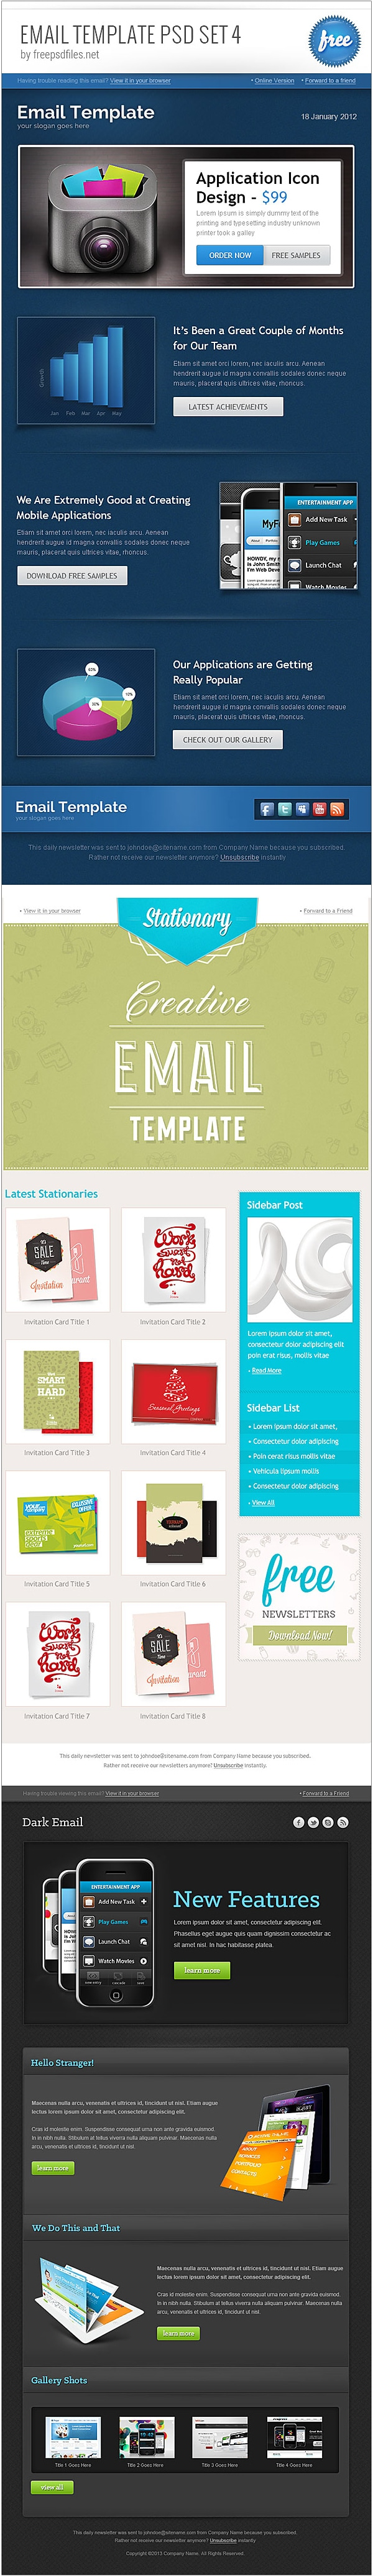 Email-Template-PSD-Set